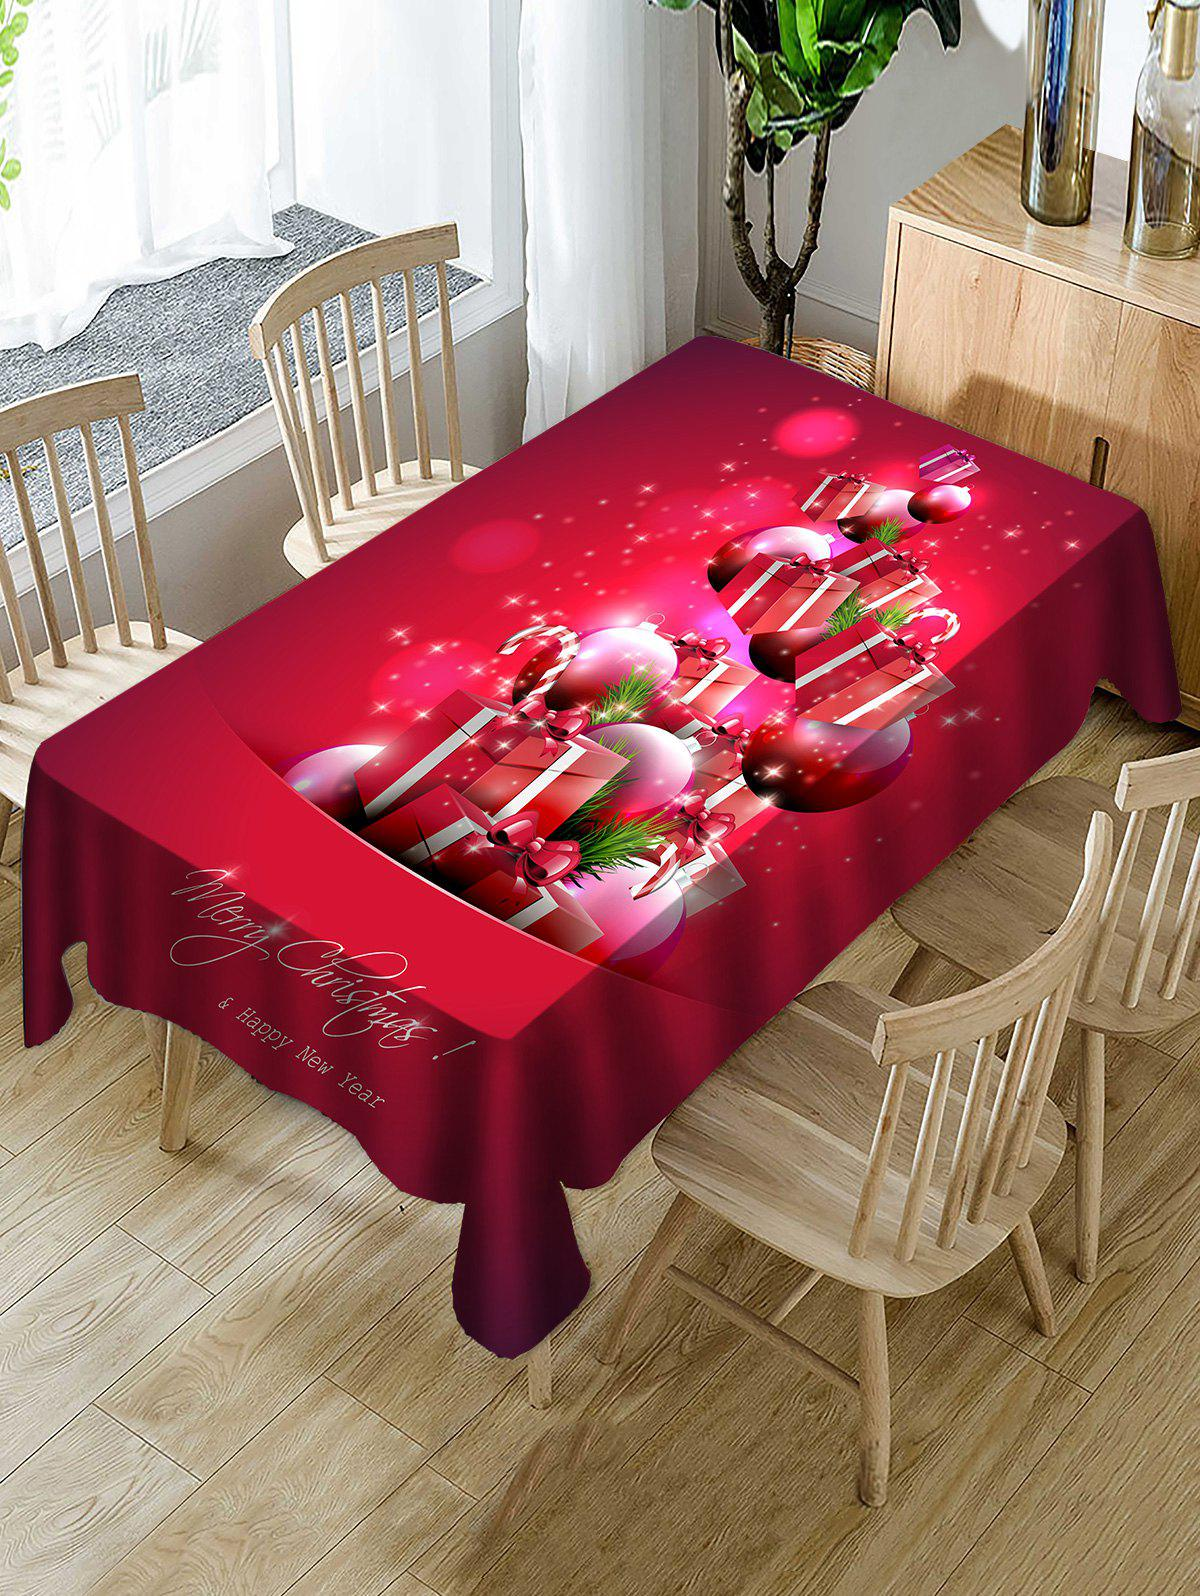 Shop Christmas Gifts Ball Print Fabric Waterproof Tablecloth